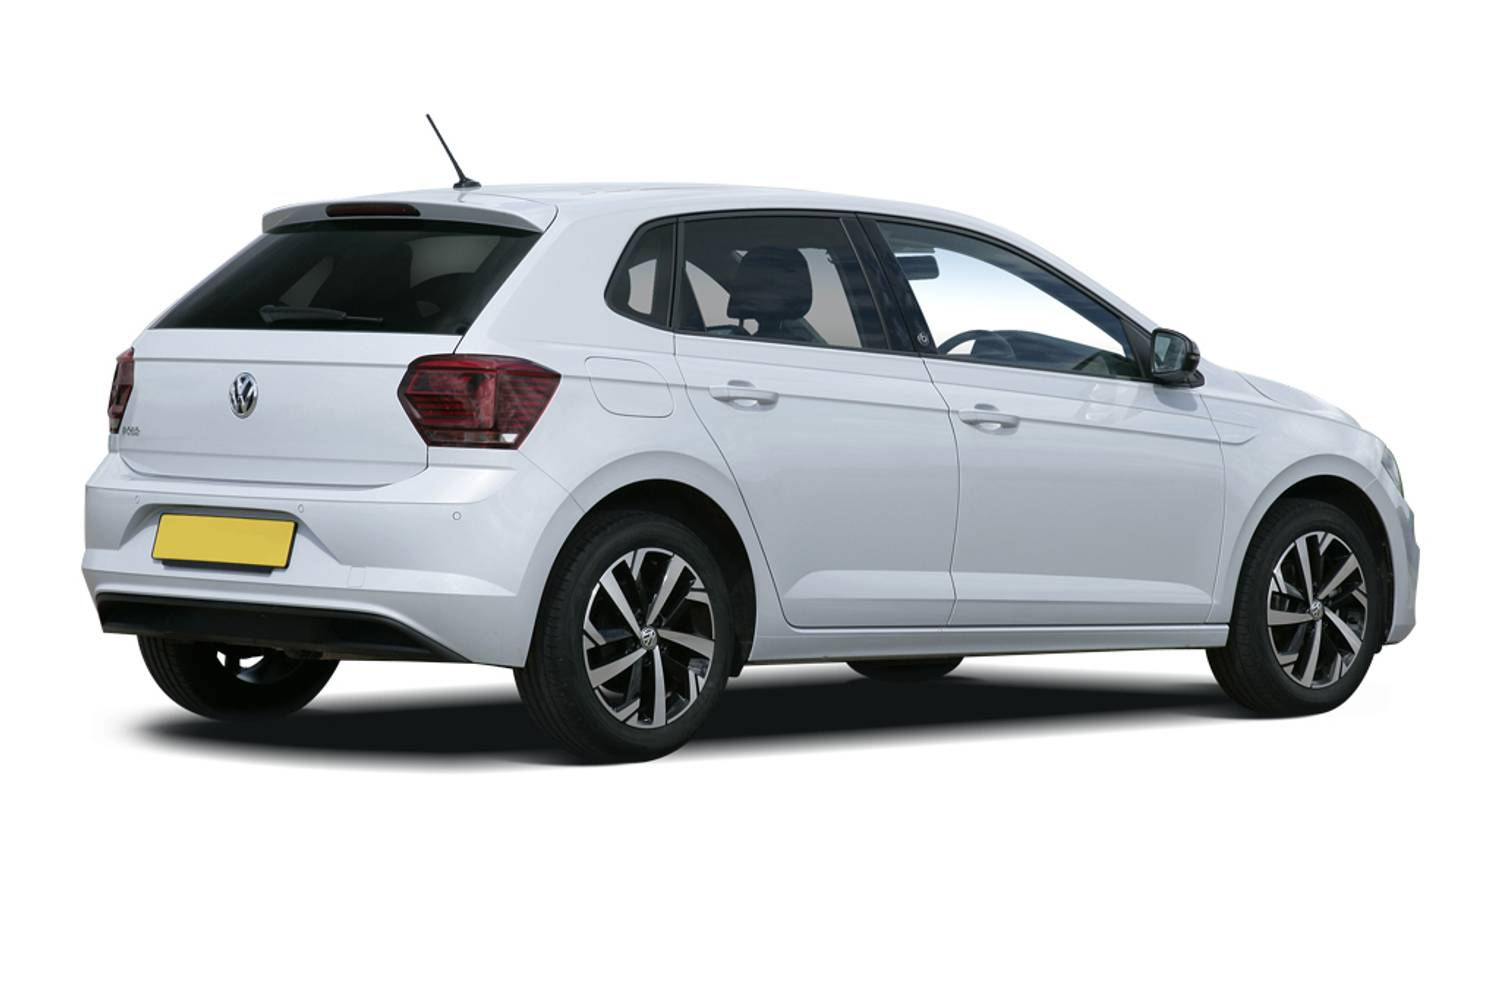 Volkswagen Polo Hatchback 5dr Rear Three Quarter